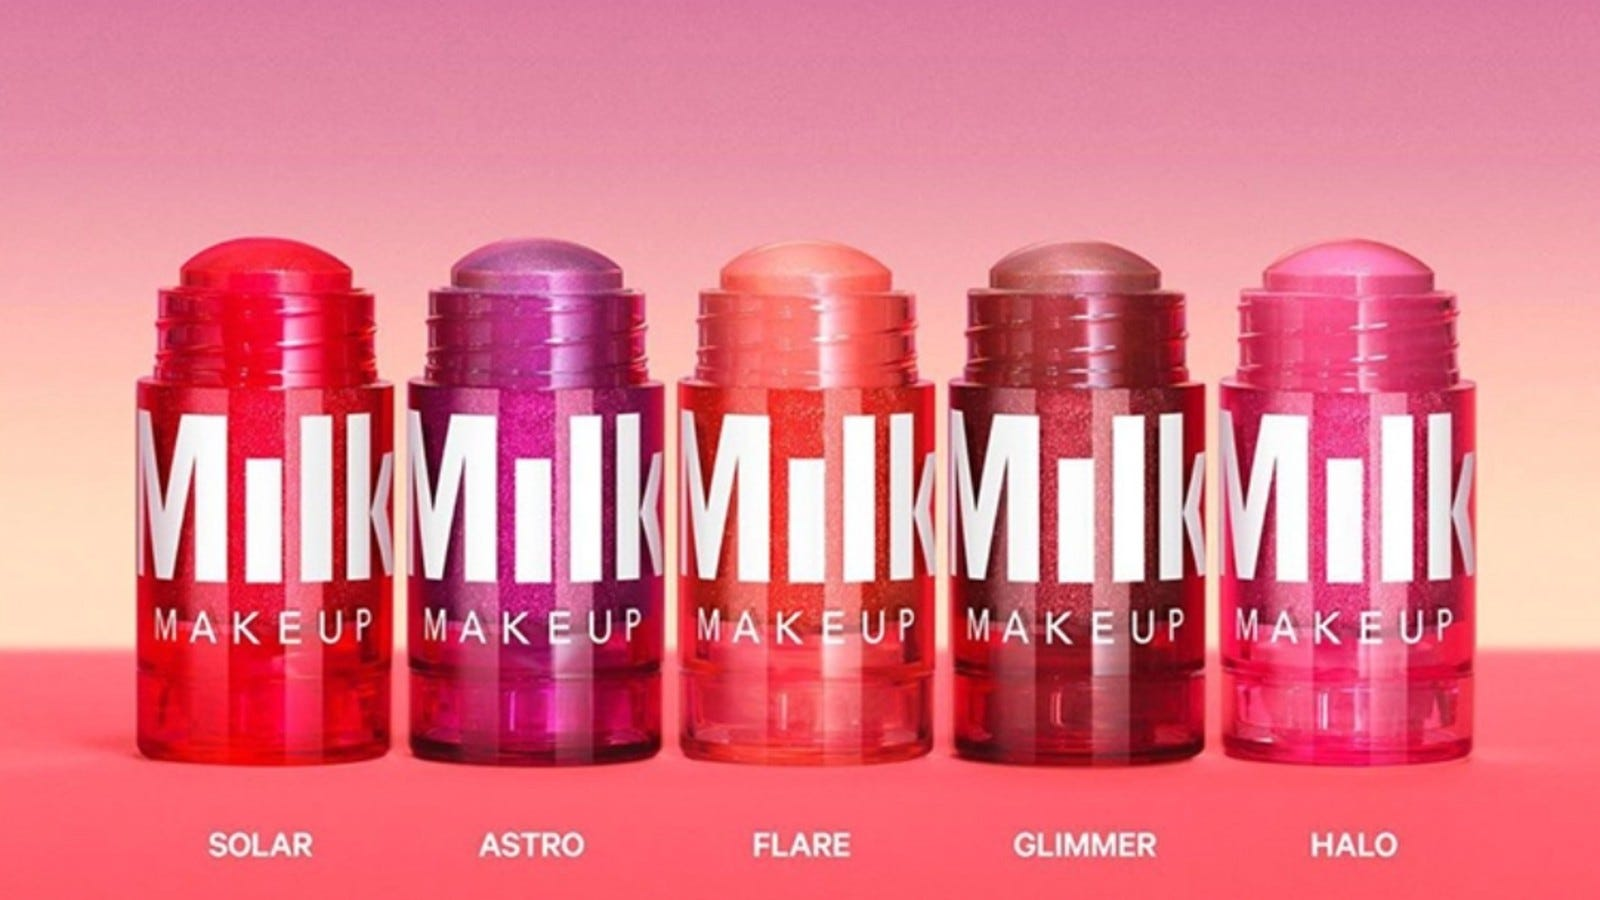 colorful Milk Makeup tubes on pink and purple background